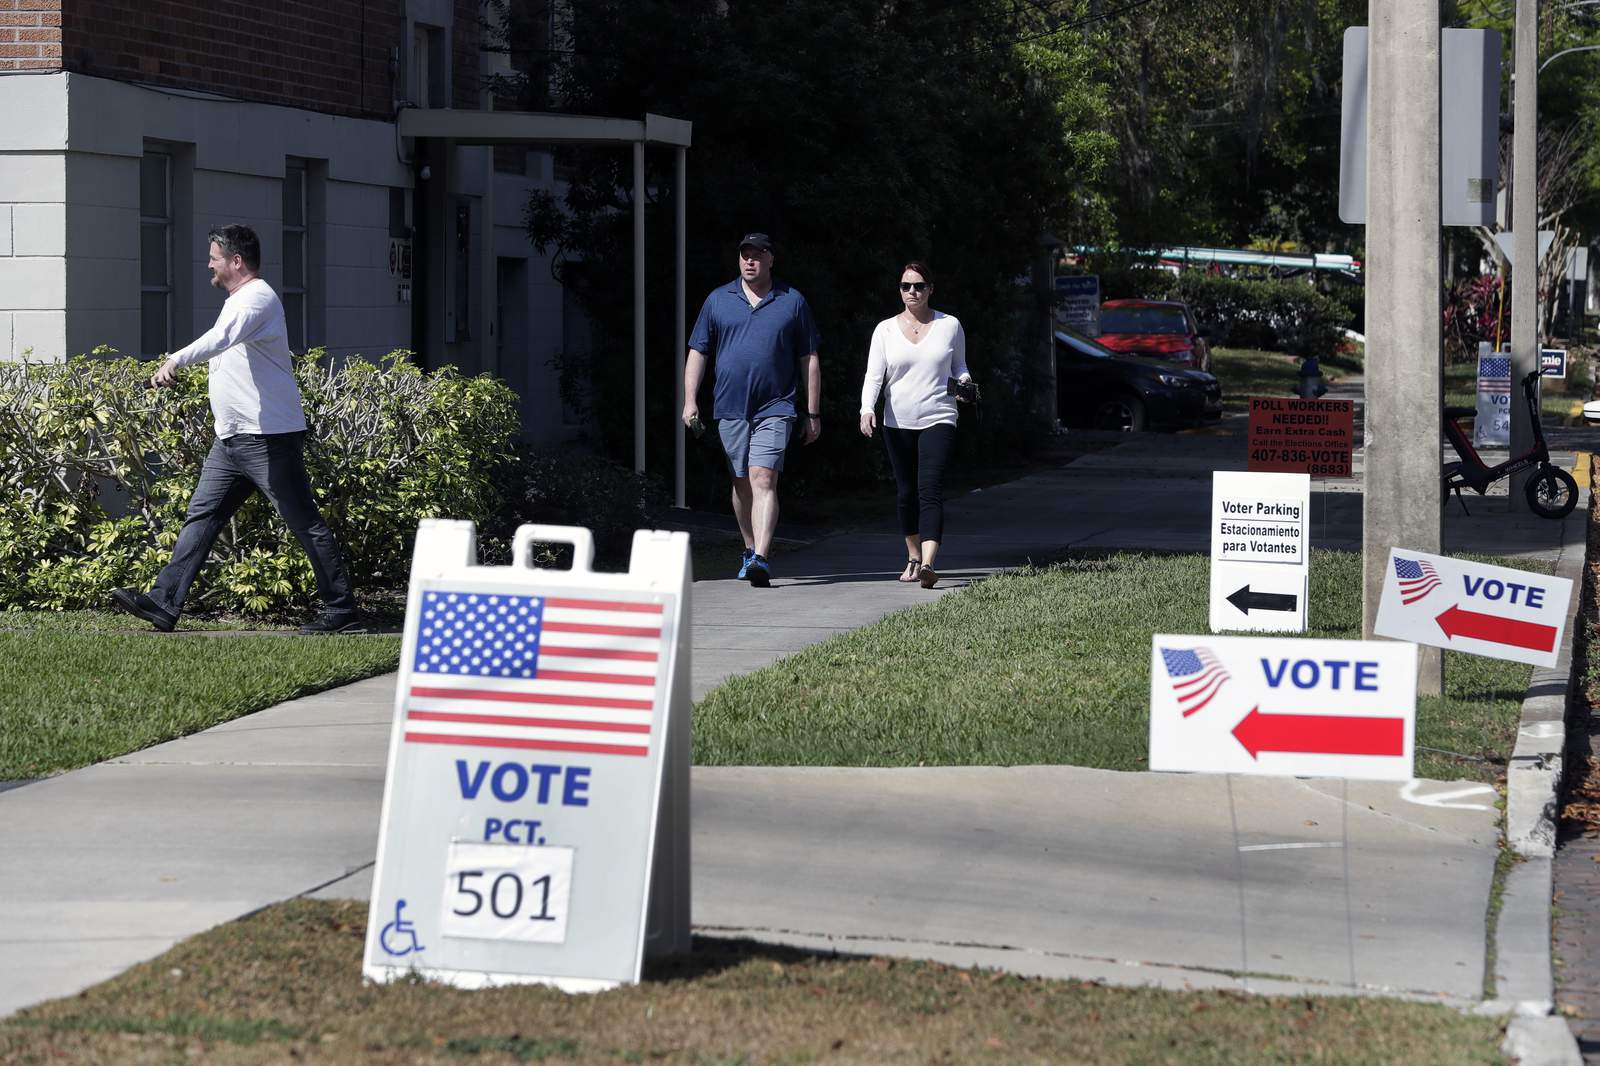 Law enforcement prepares for possibility of armed militias, voter suppression at Florida polling places